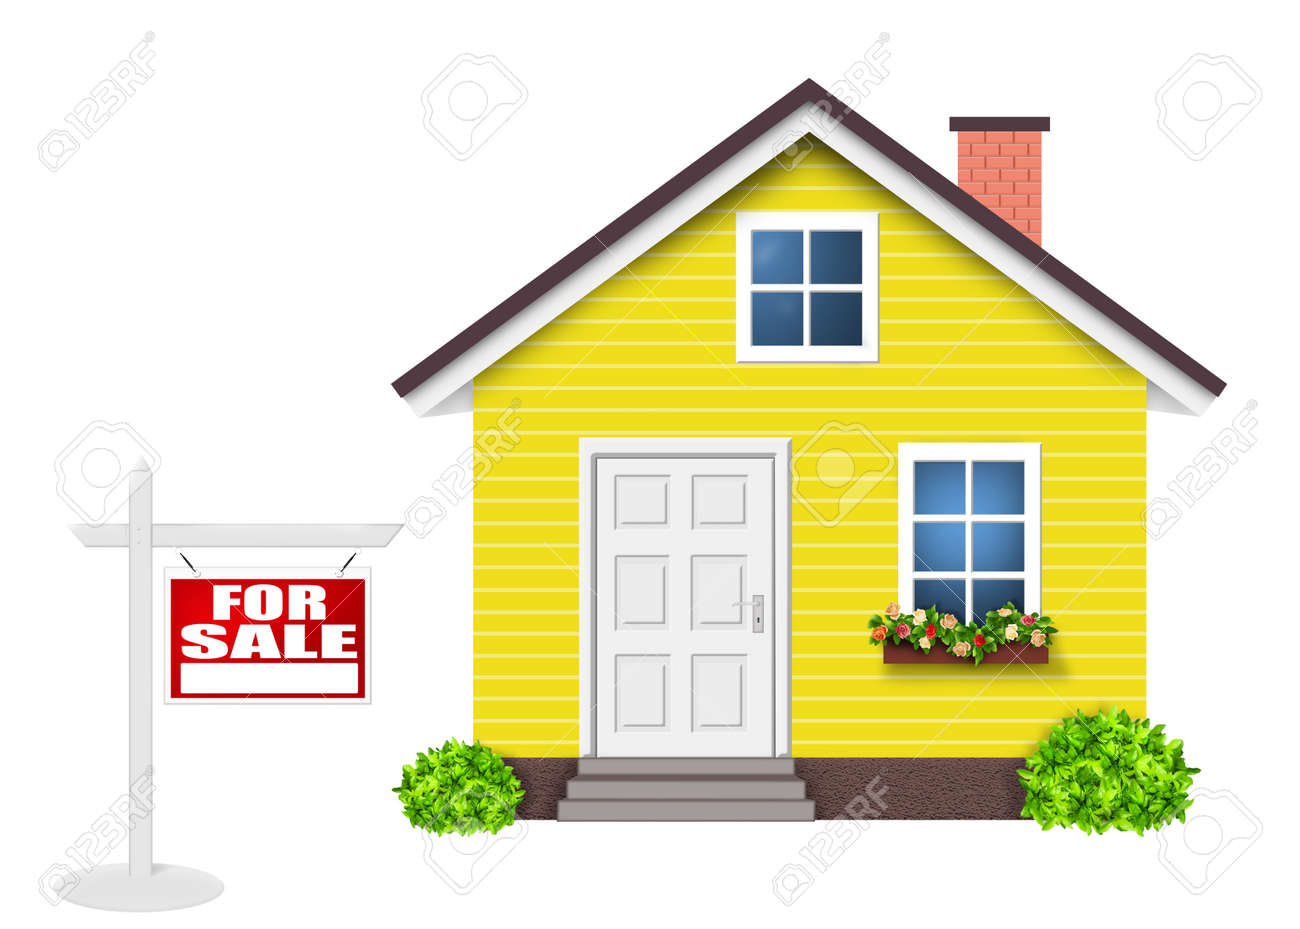 House for sale, Home yellow simple - 155303004